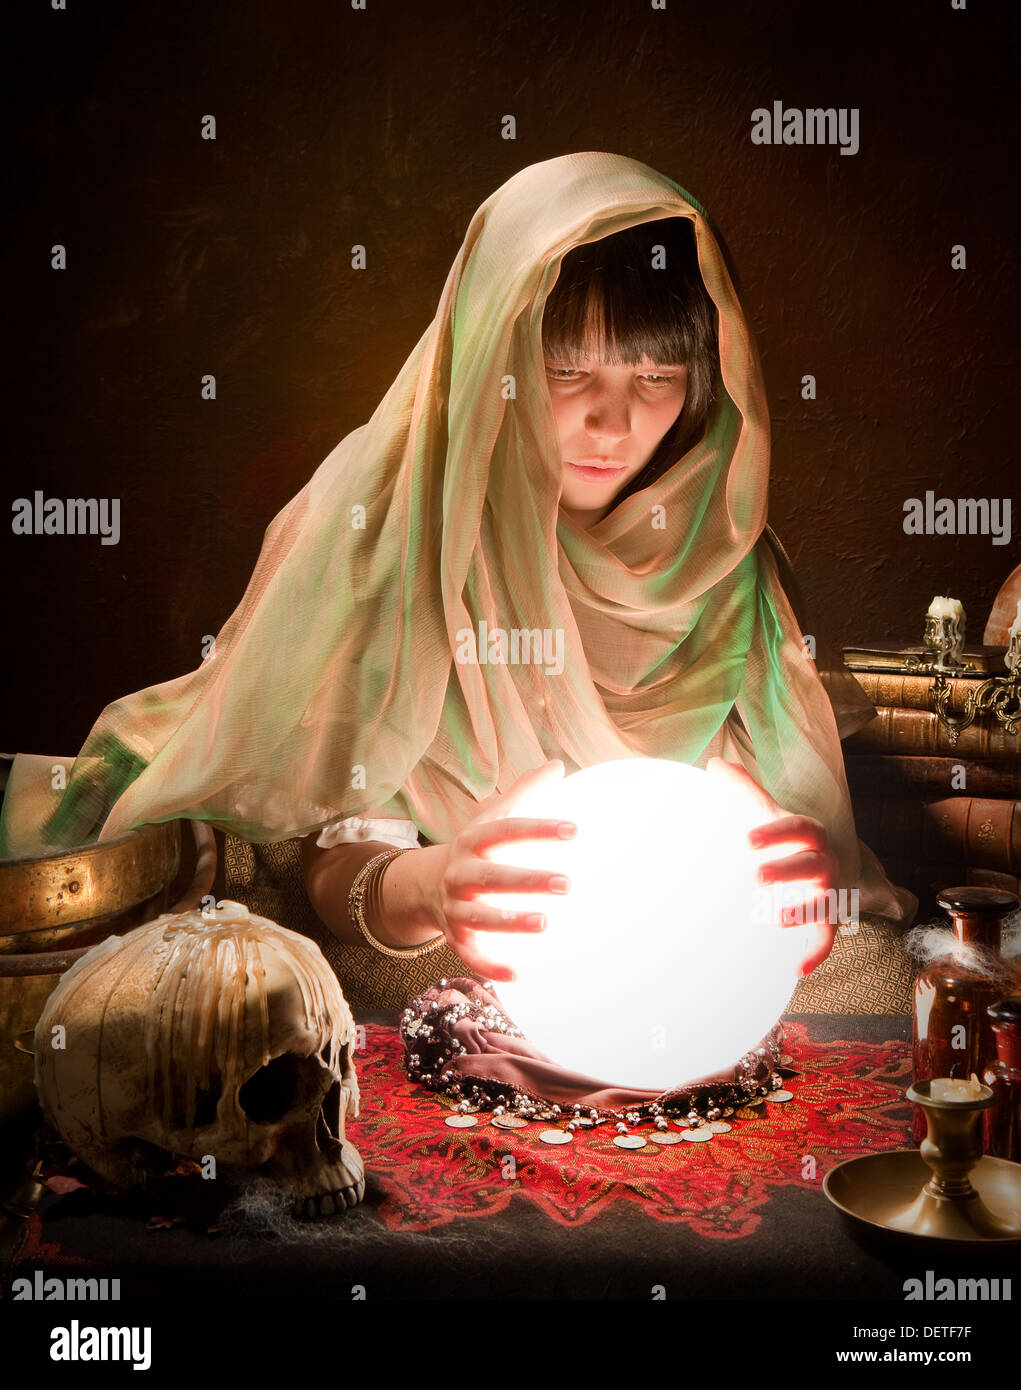 Young fortune-teller reading the future in a crystral ball - Stock Image